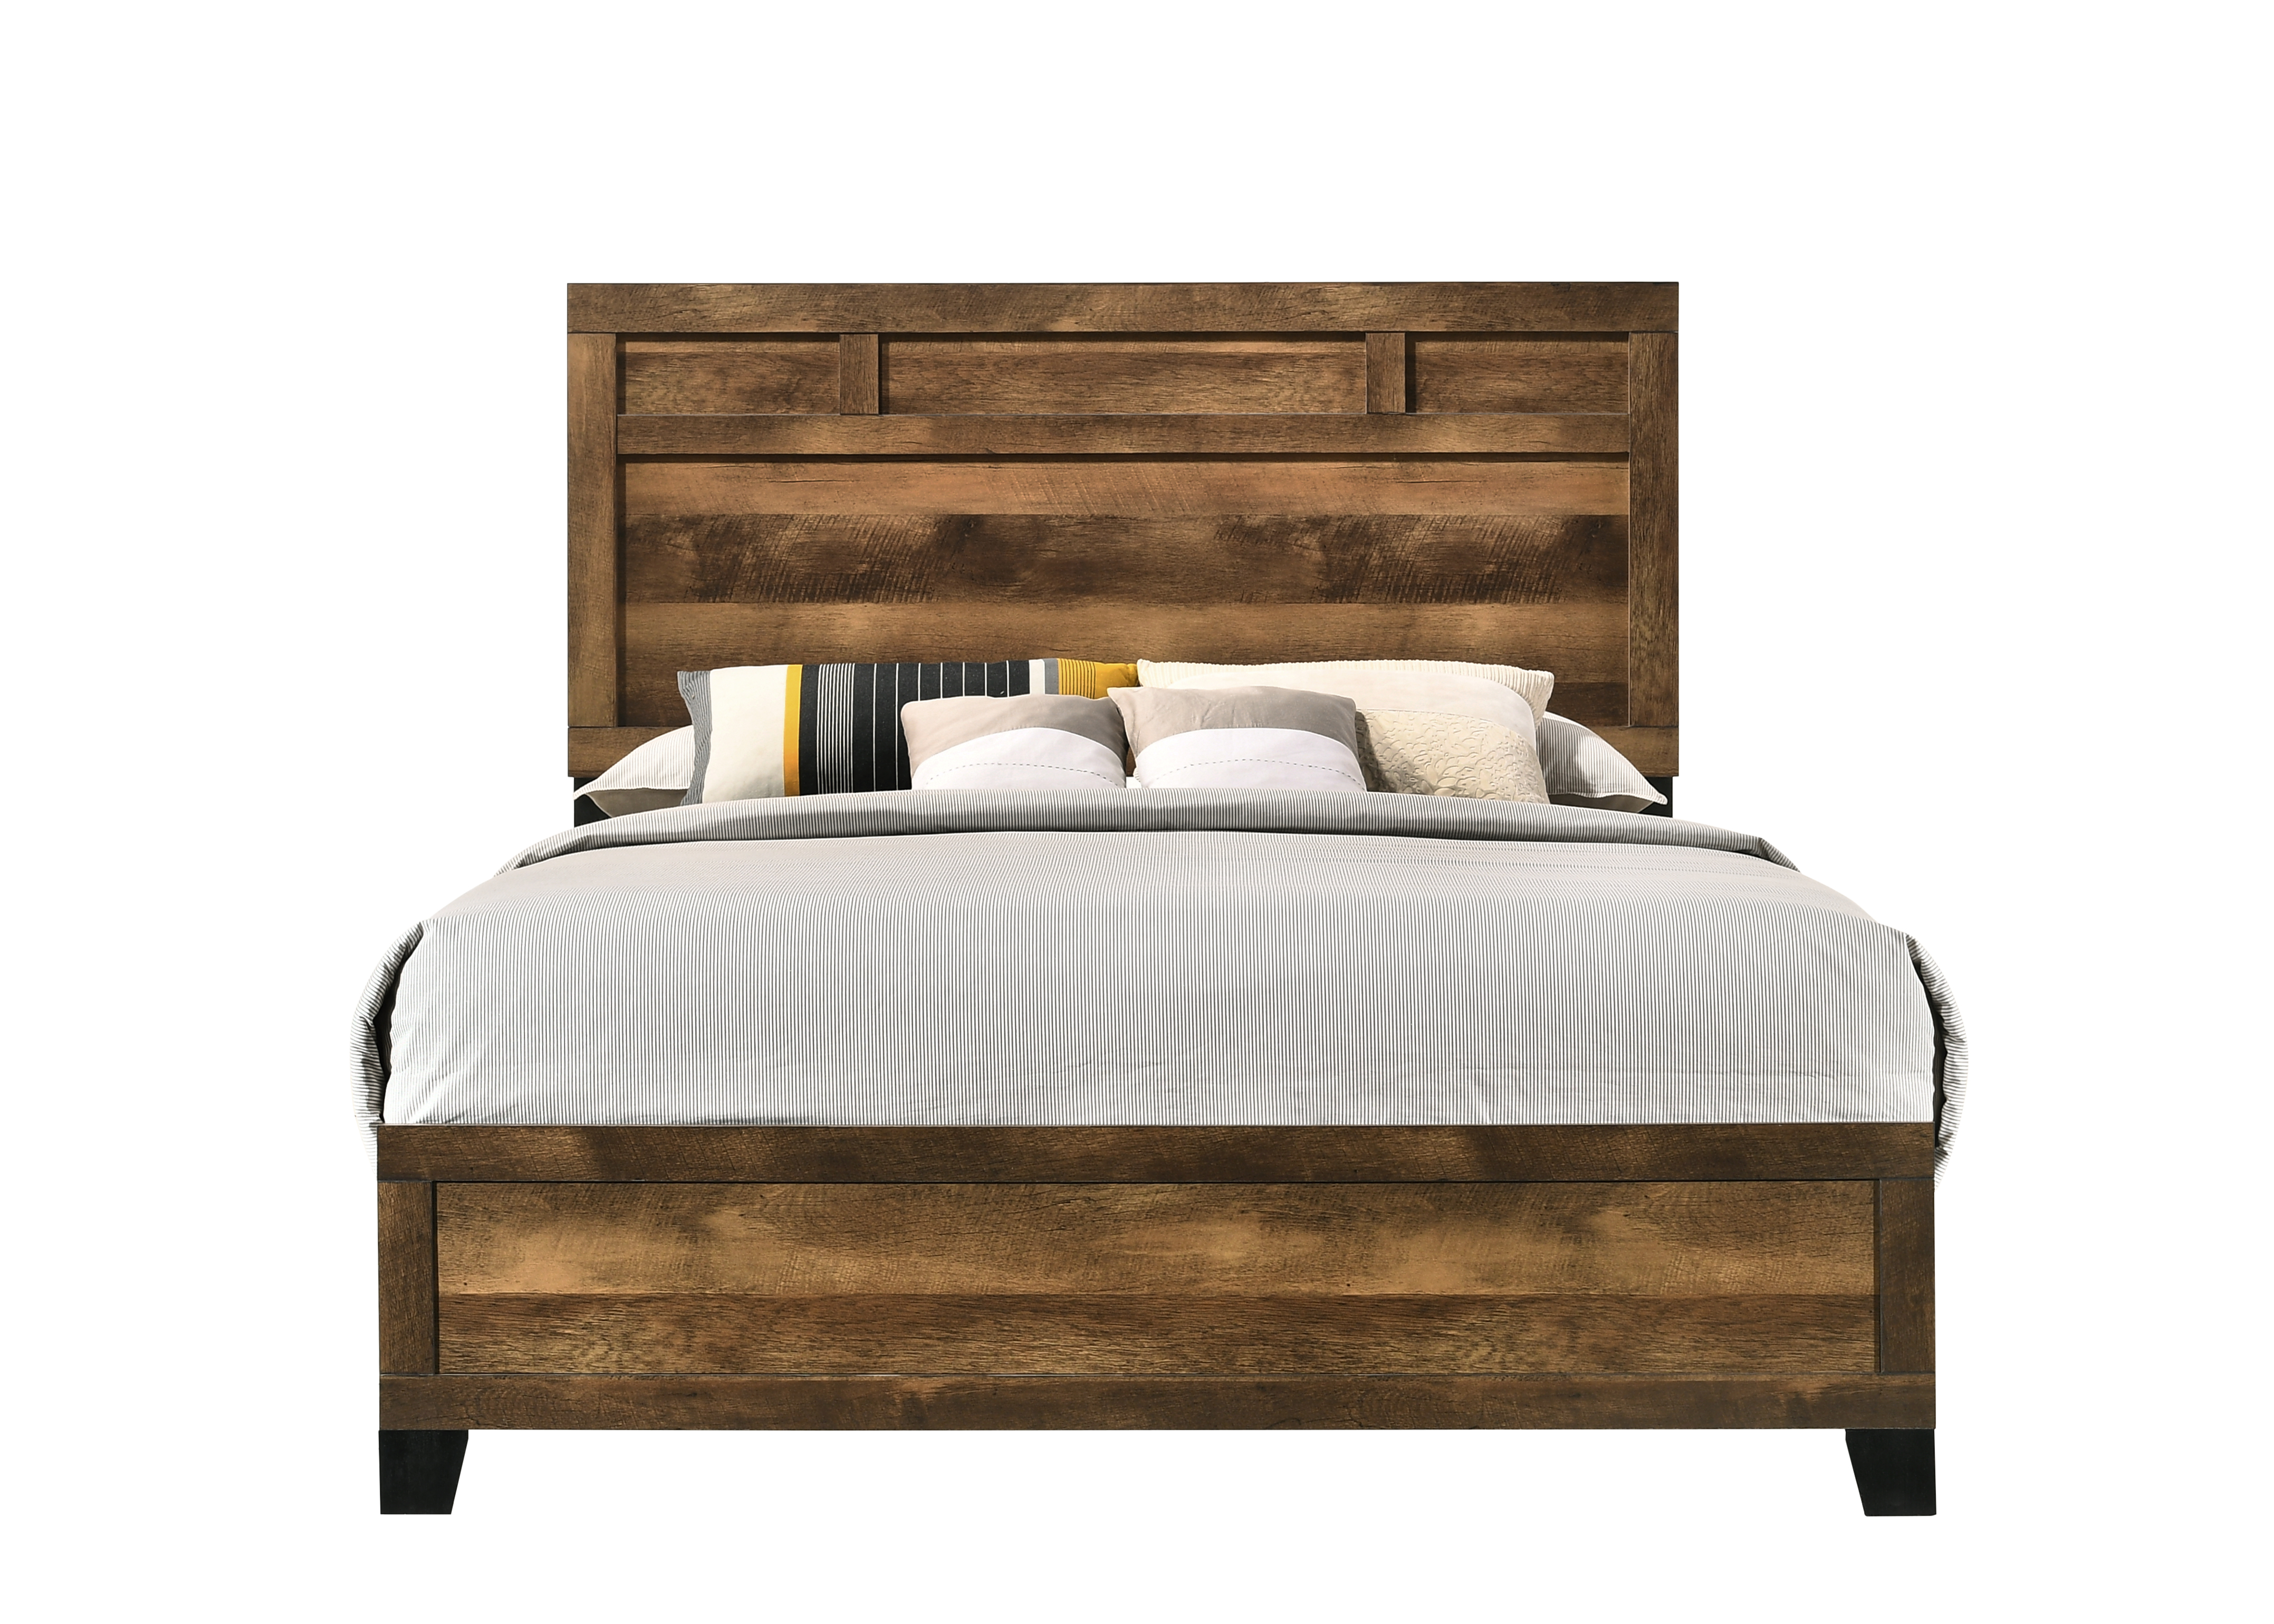 Morales Queen Bed by Acme Furniture at Dream Home Interiors